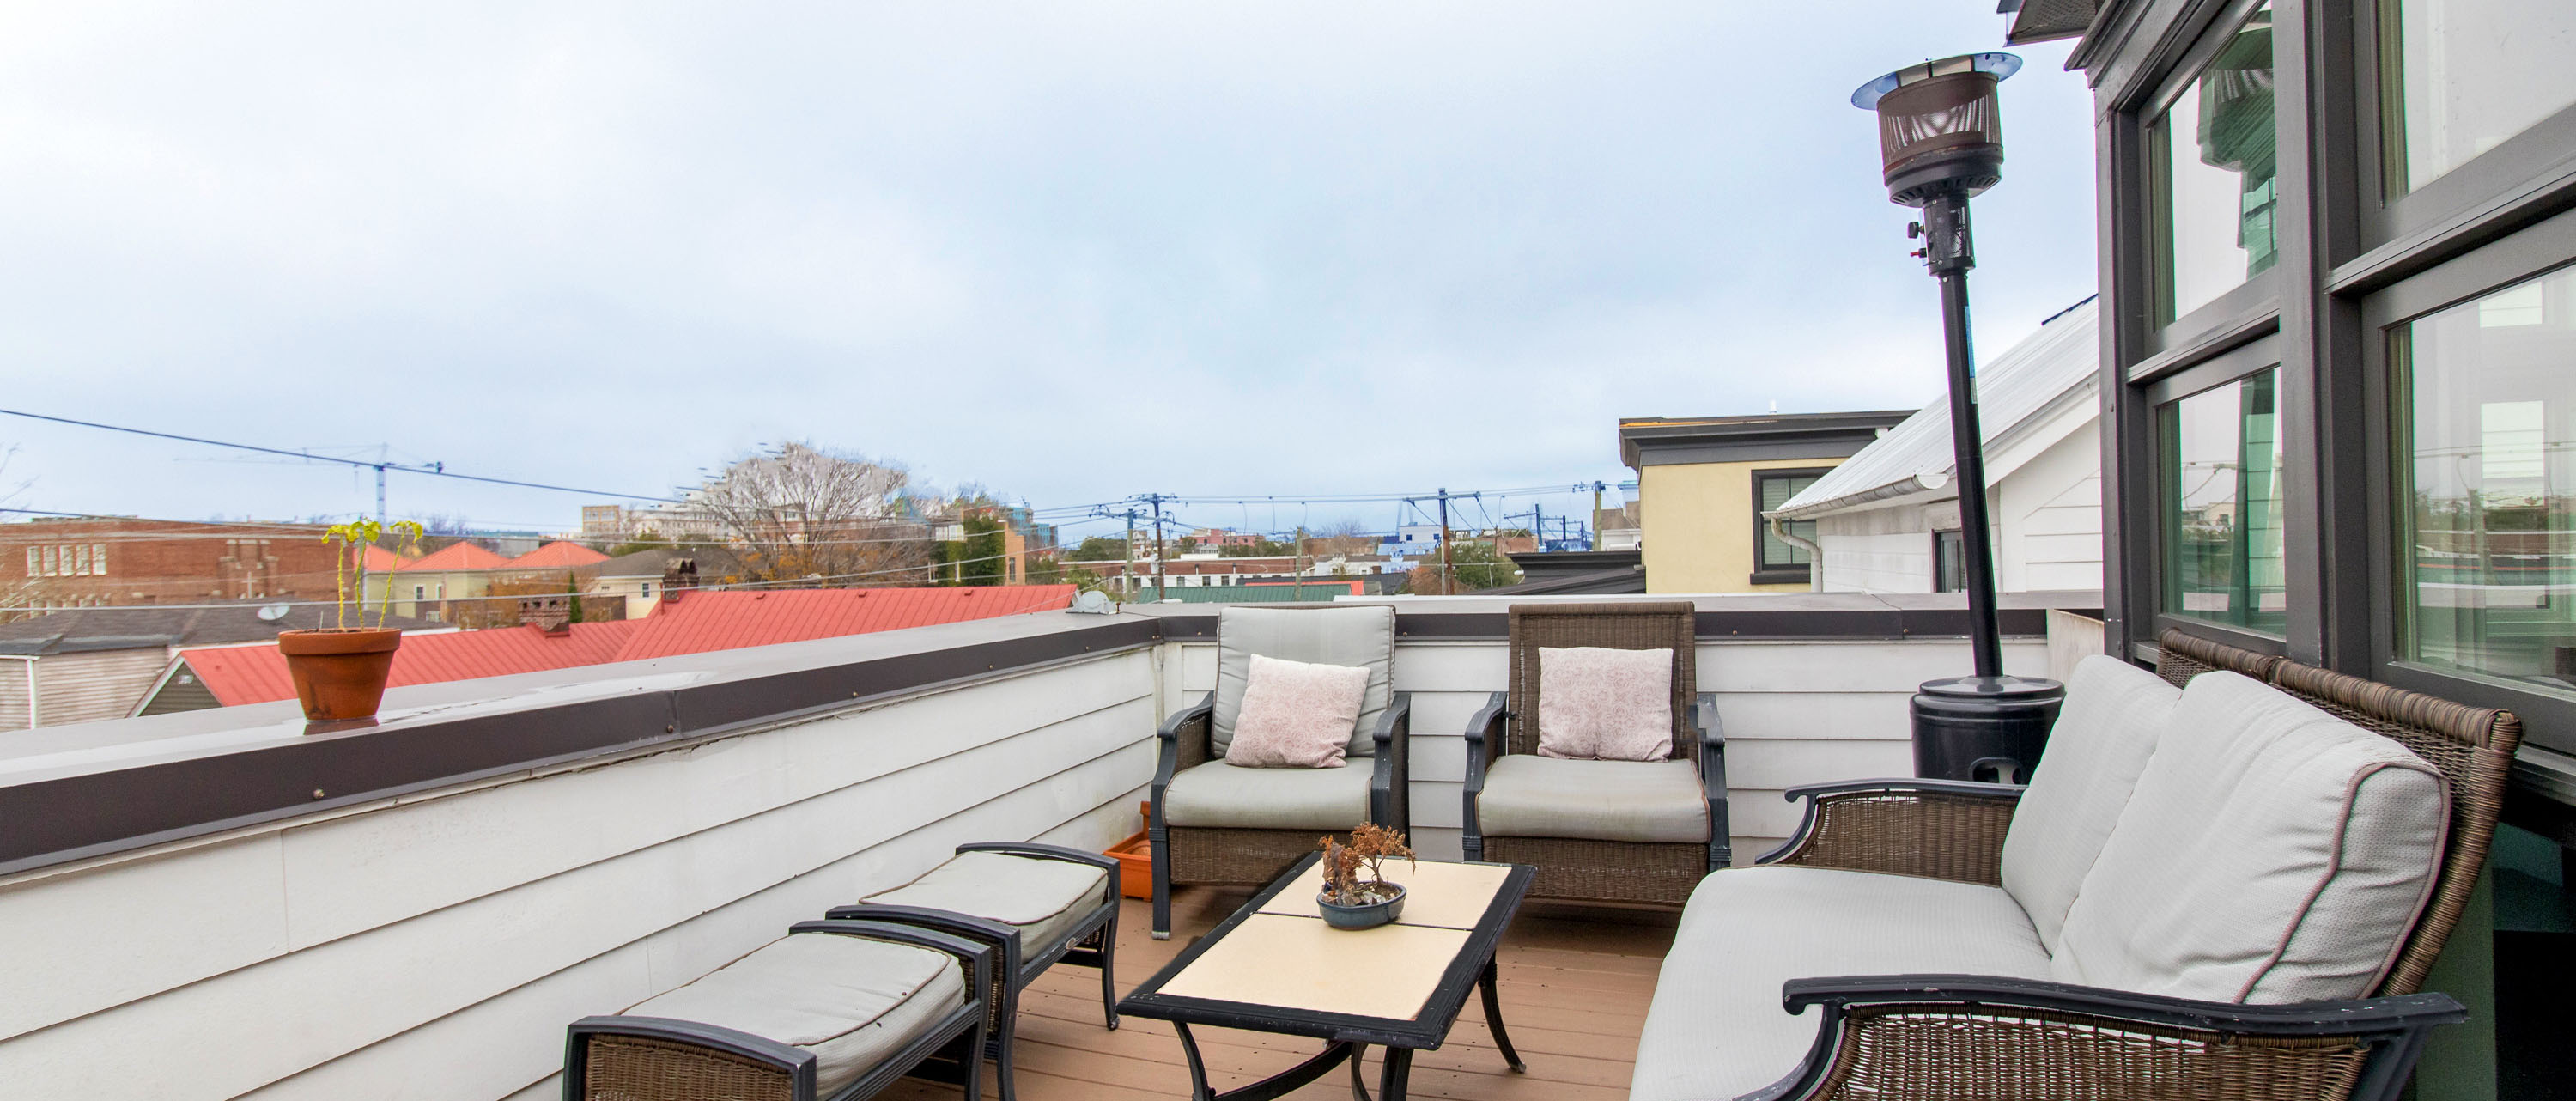 49A Morris Street, Radcliffeborough rooftop deck